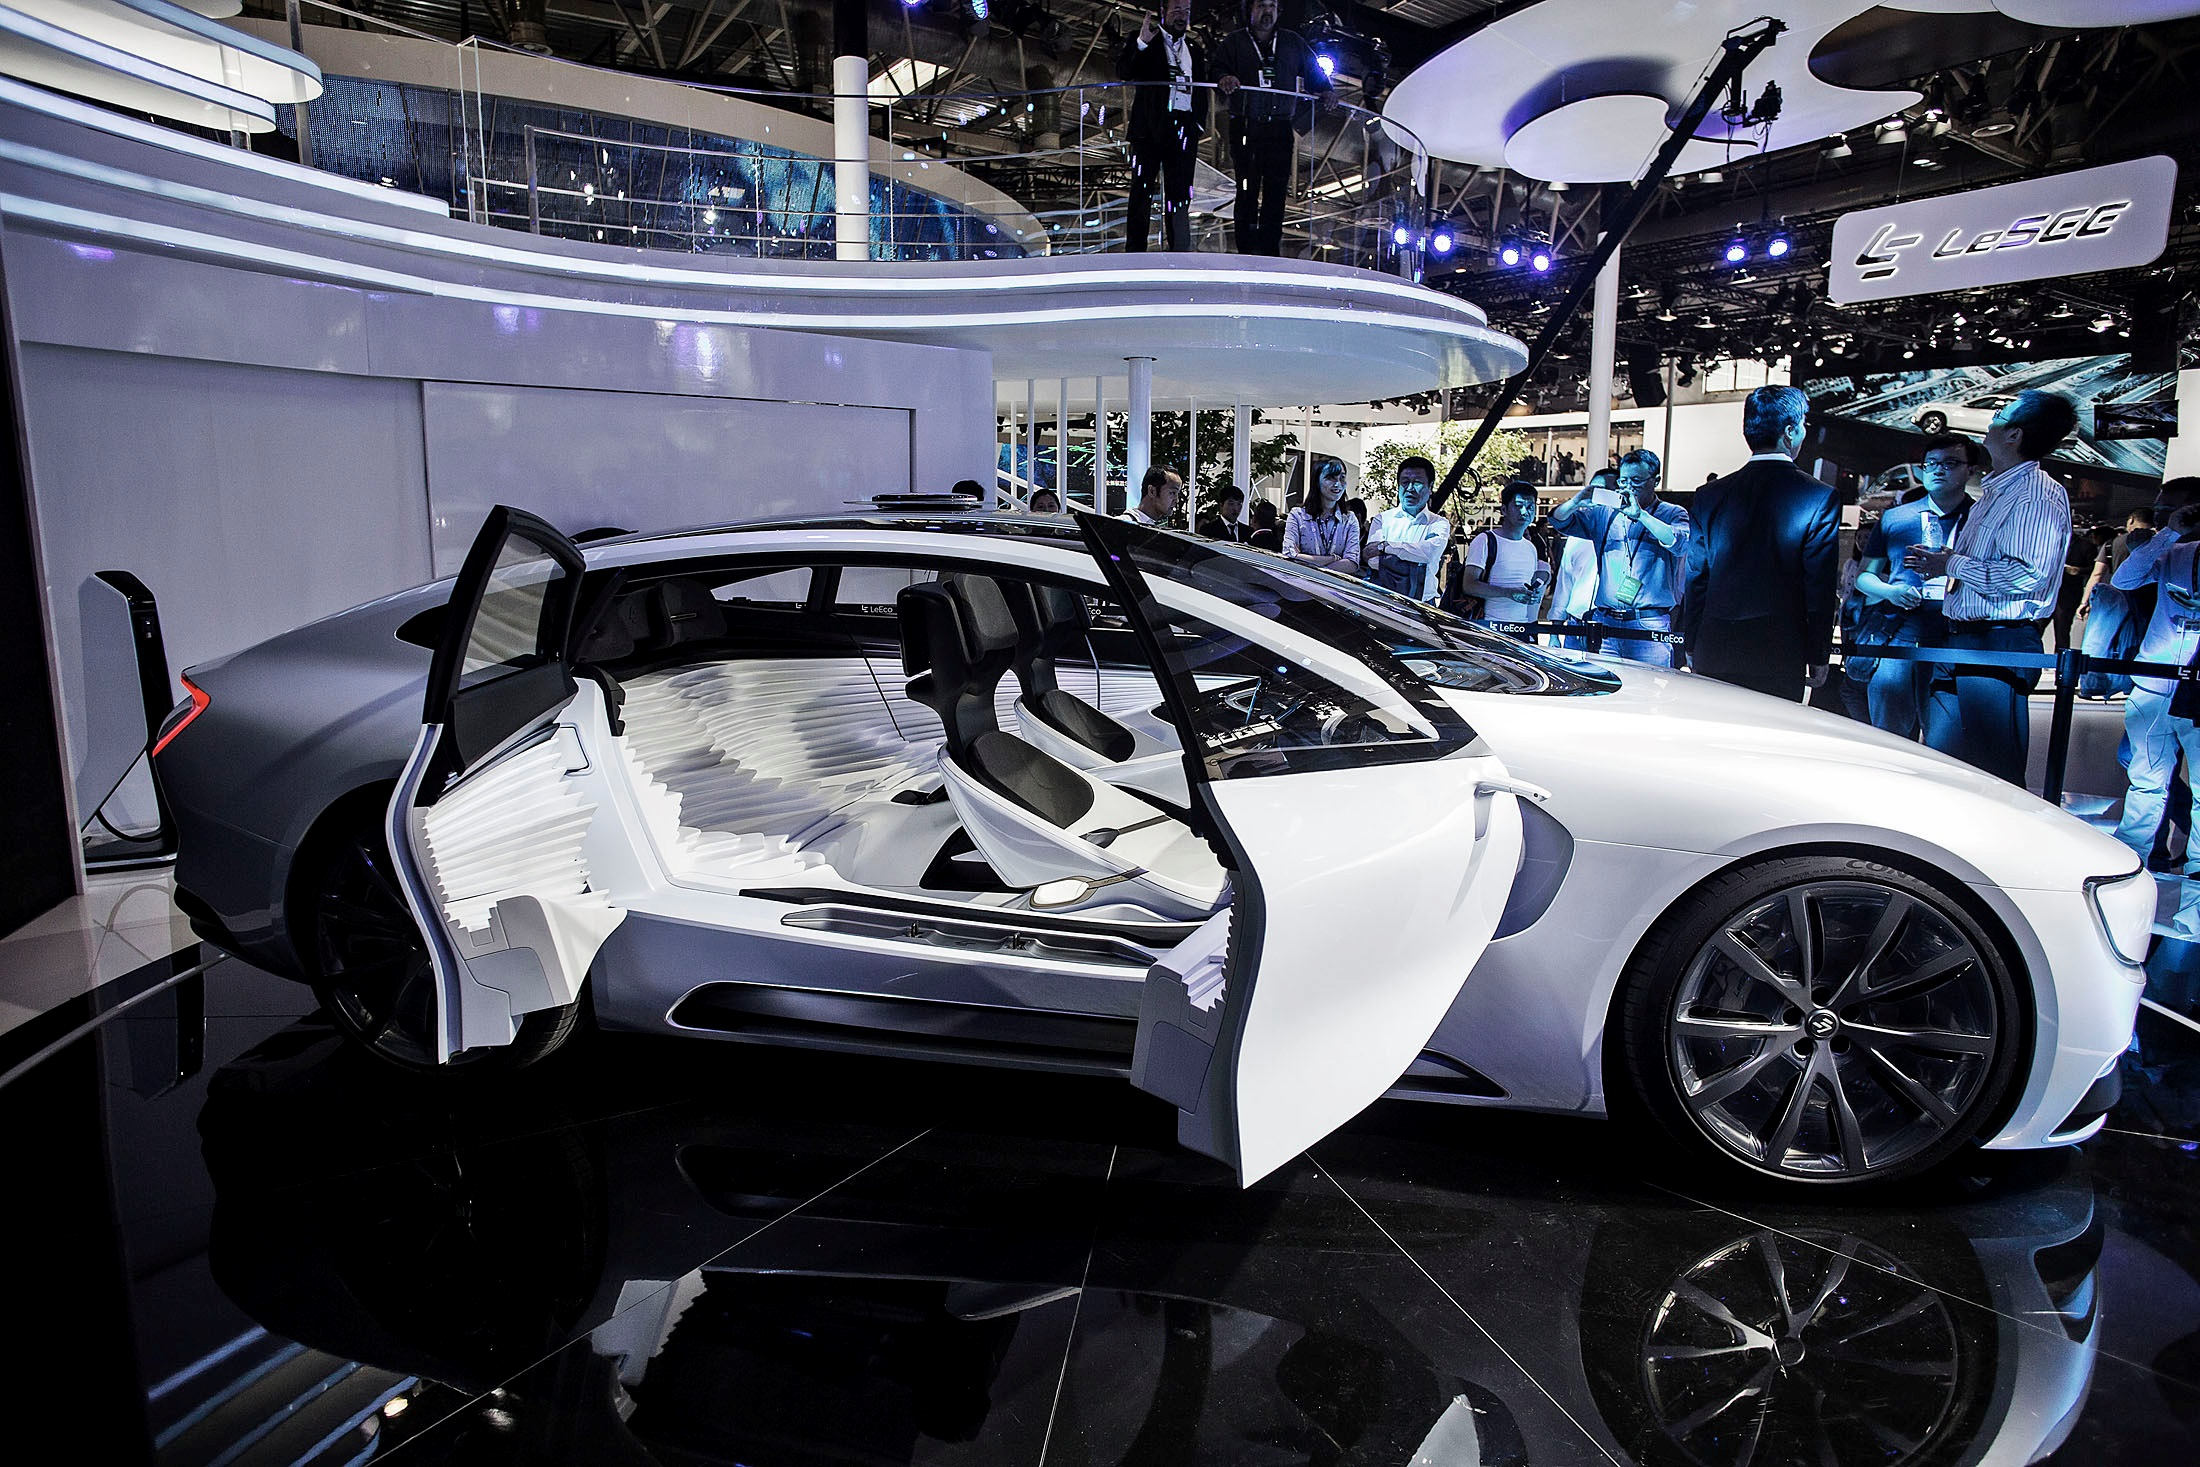 The LeEco LeSEE offered conference-goers a glimpse into the future of the connected, autonomous automobile.